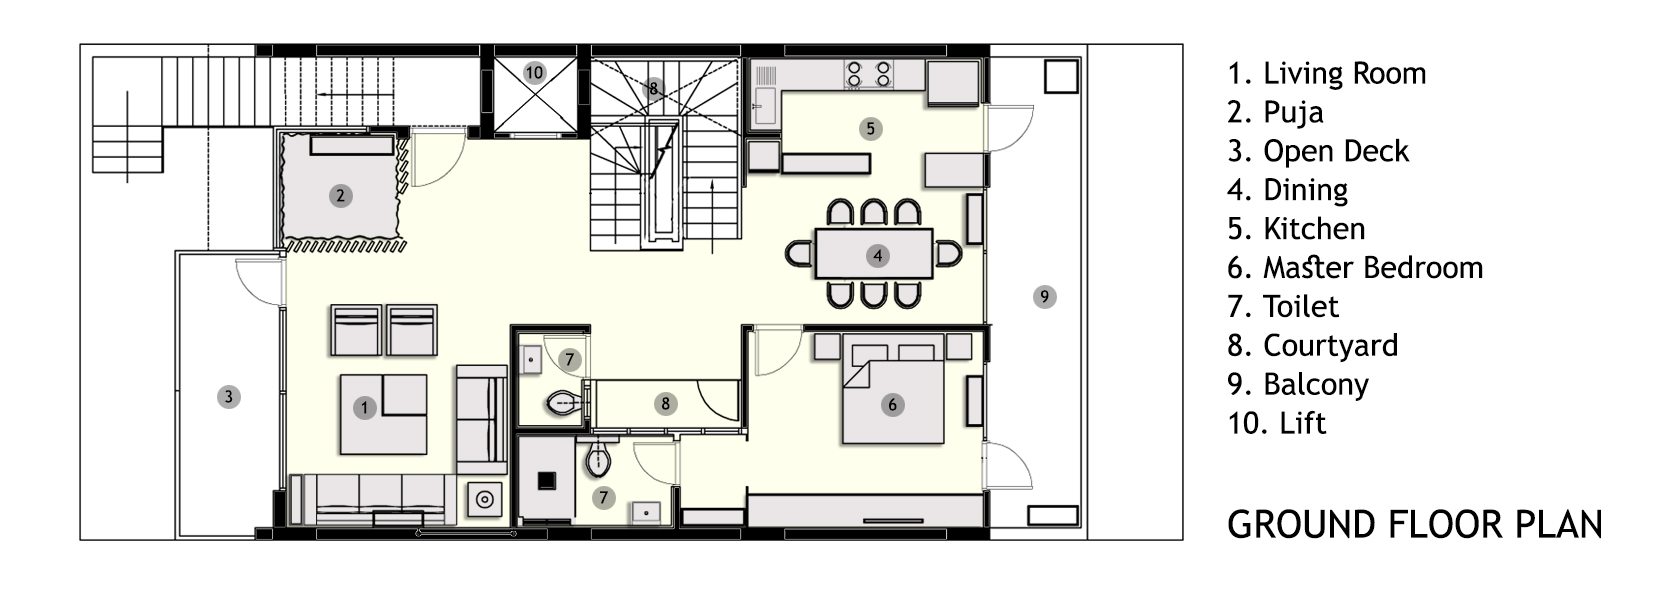 4. ground floor plan